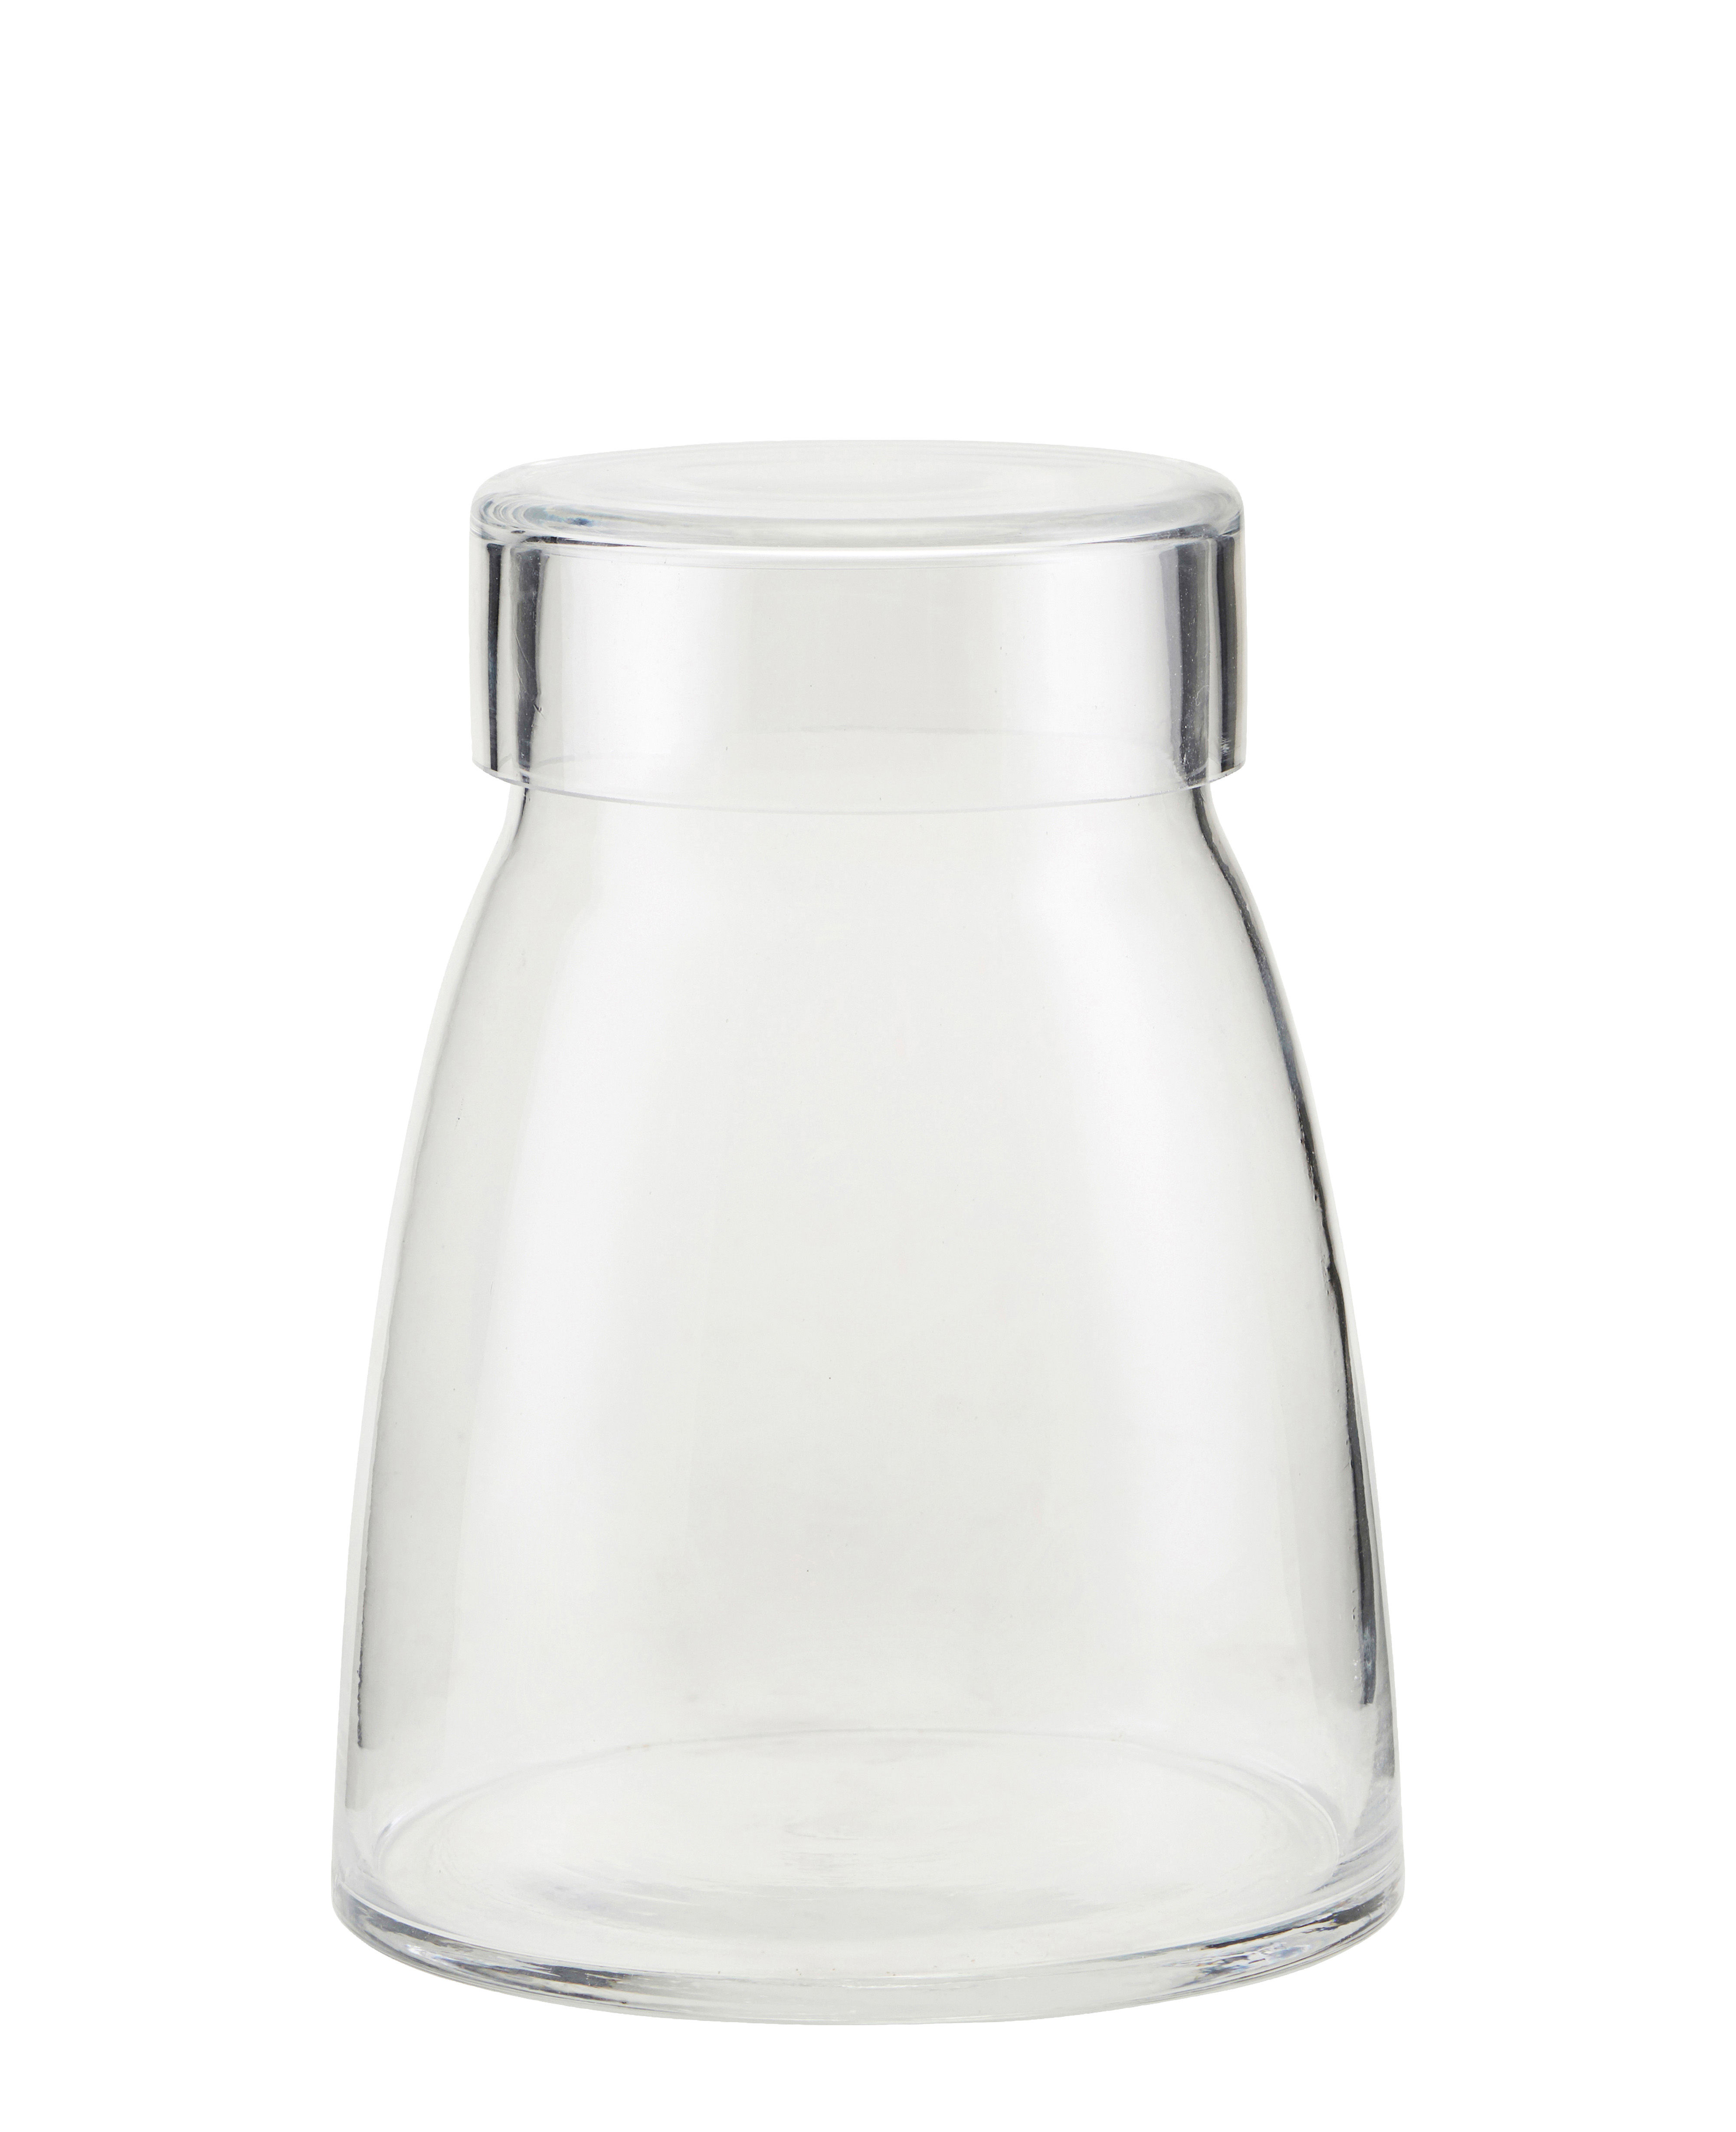 Decoration - Vases - Mazzo Jar - / Ø 14 x H 18 cm by House Doctor - Transparent - Glass